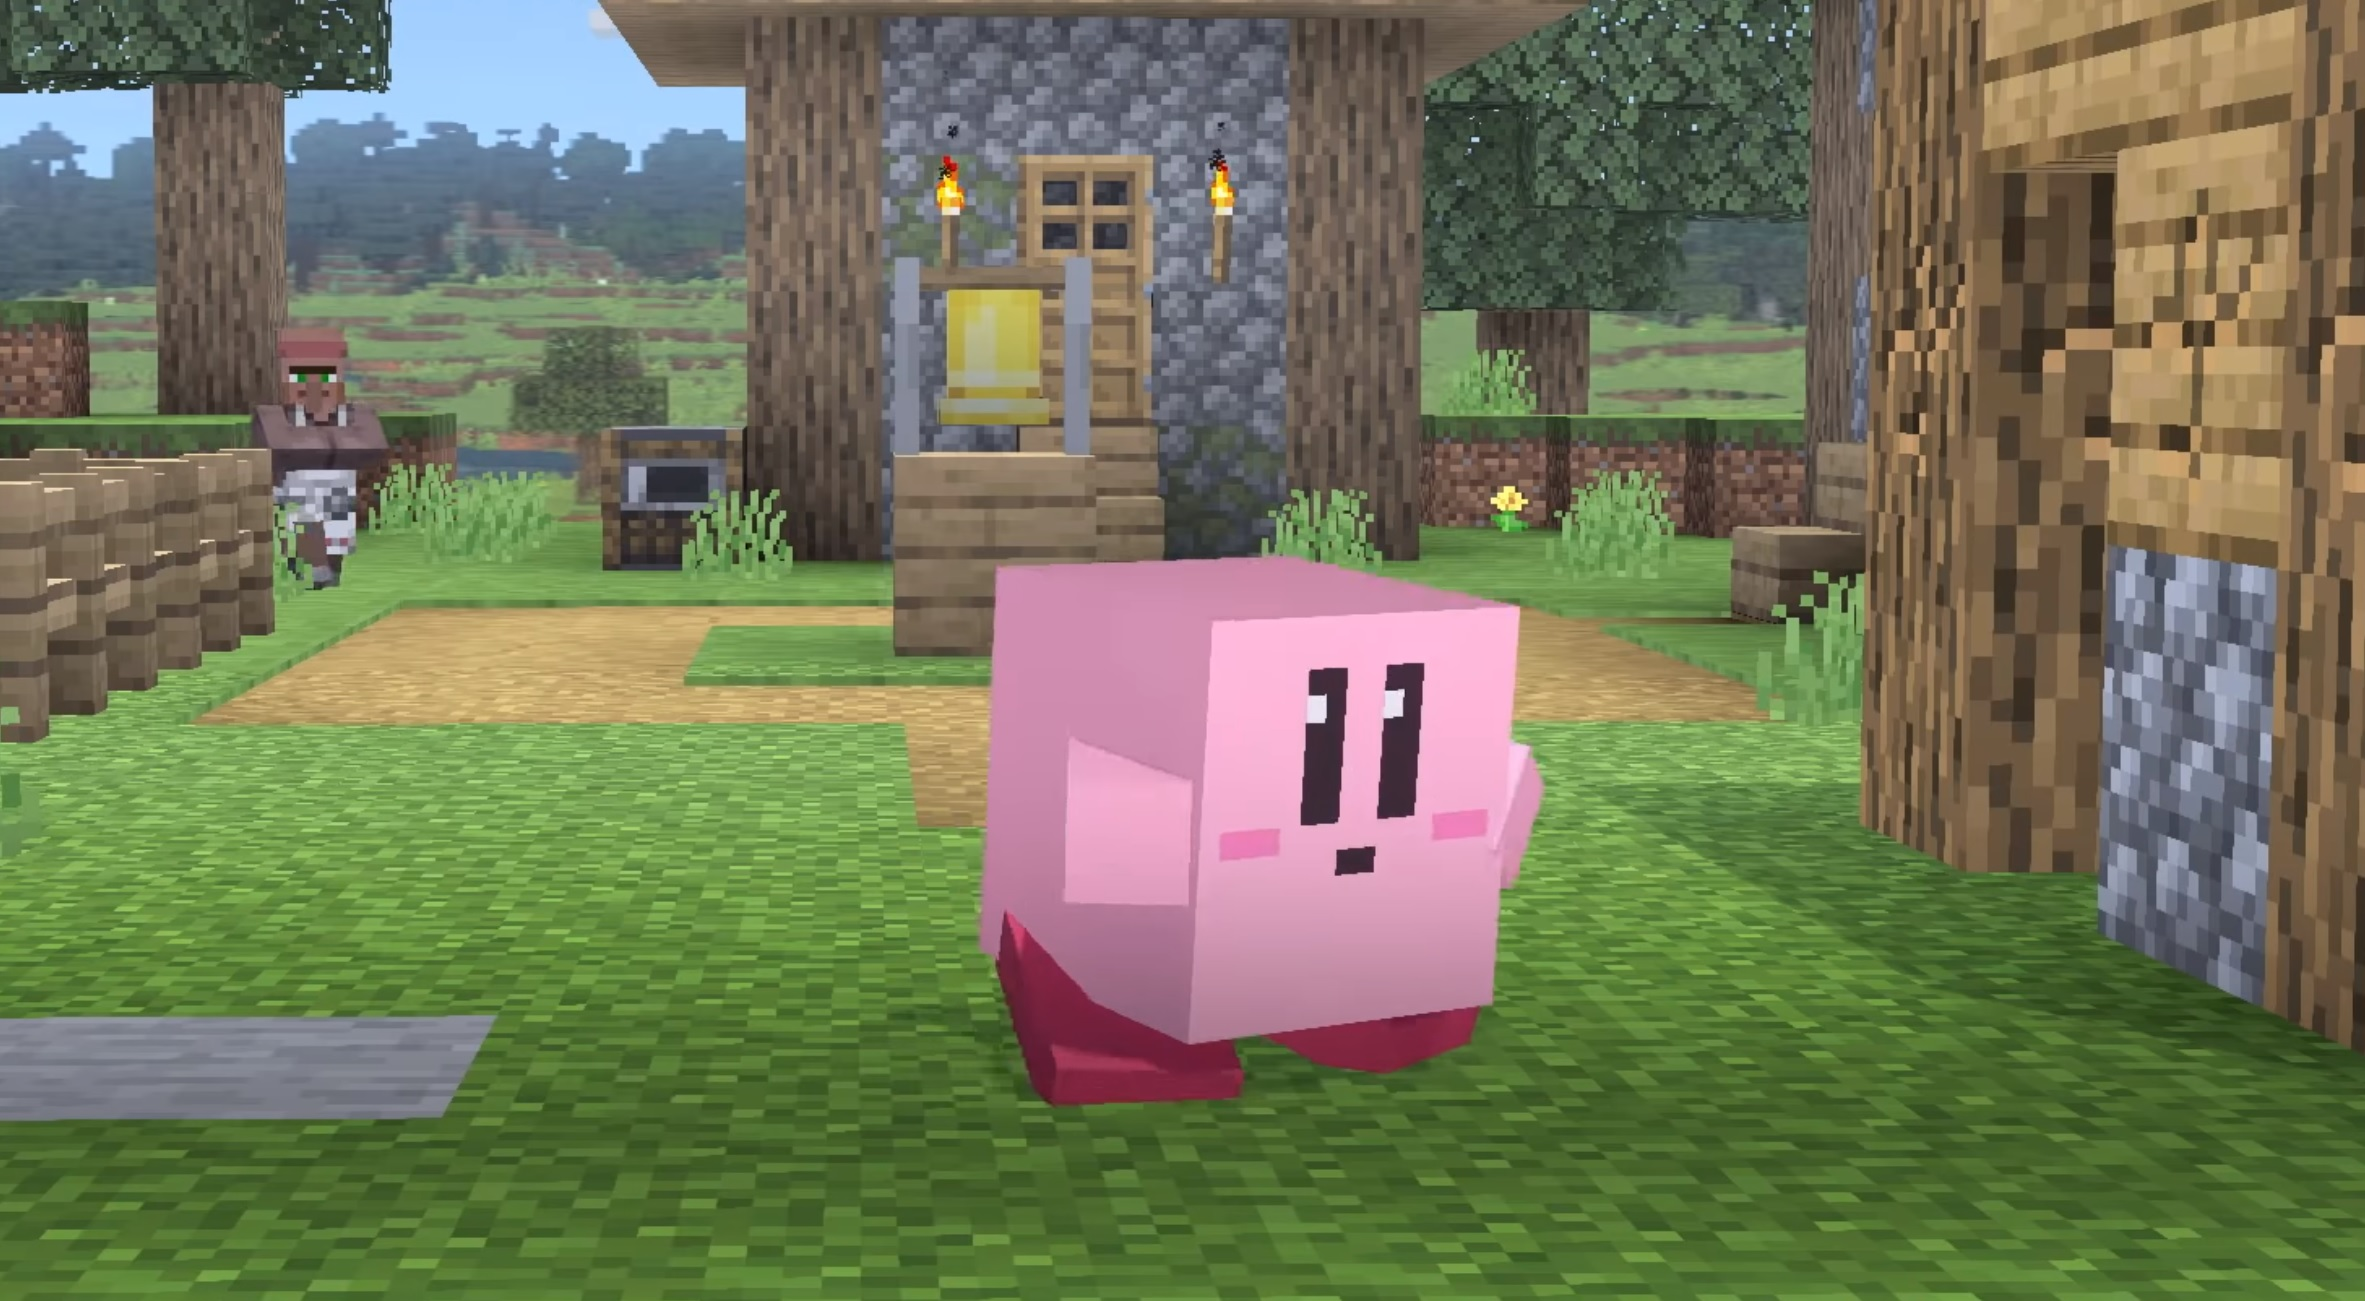 Smash Ultimate's next big balance patch will arrive with the new Minecraft additions screenshot